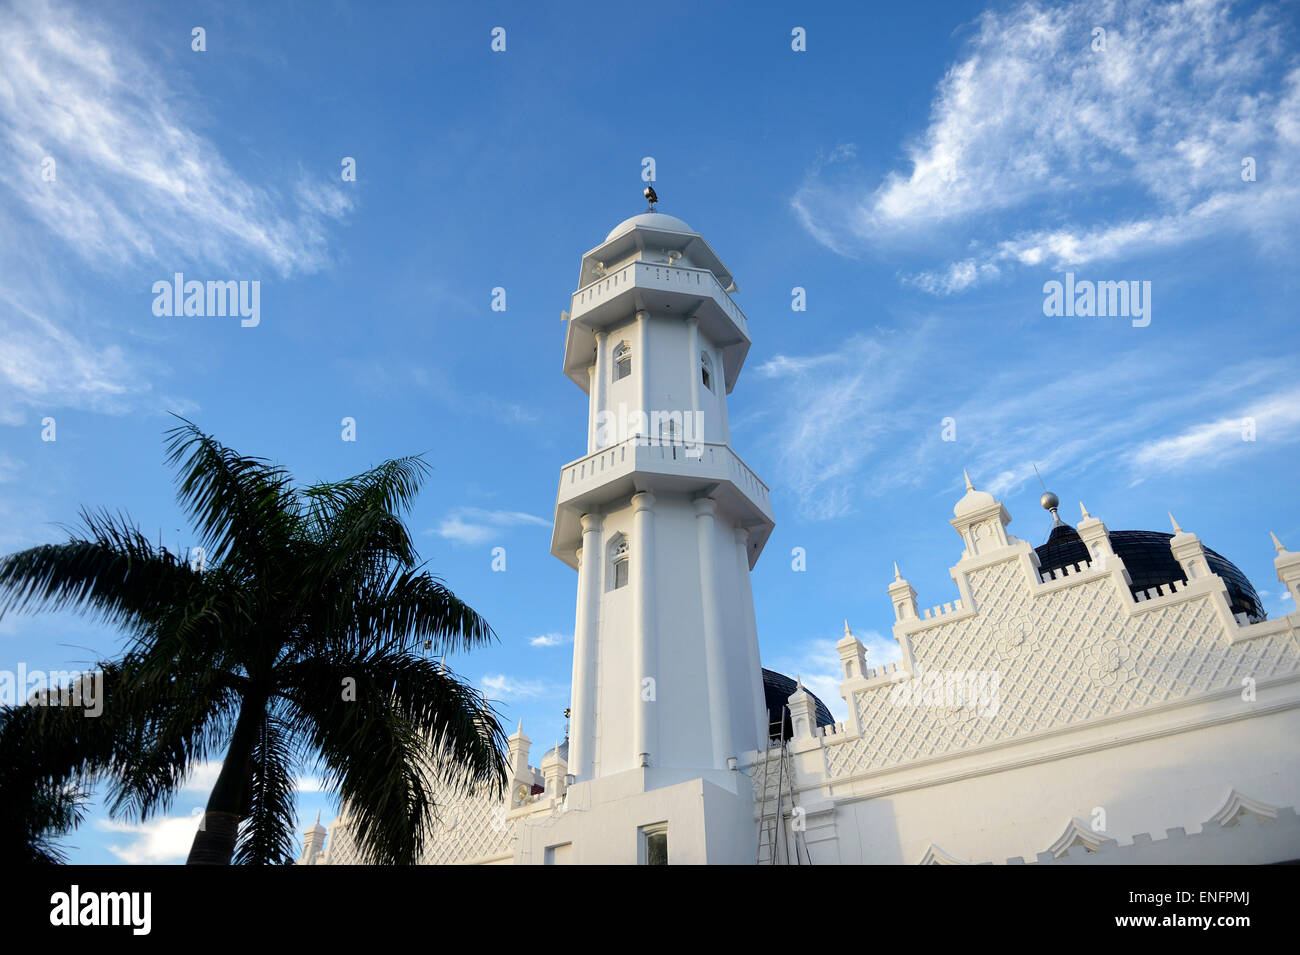 Minaret, Great Mosque, Banda Aceh, Indonesia Stock Photo